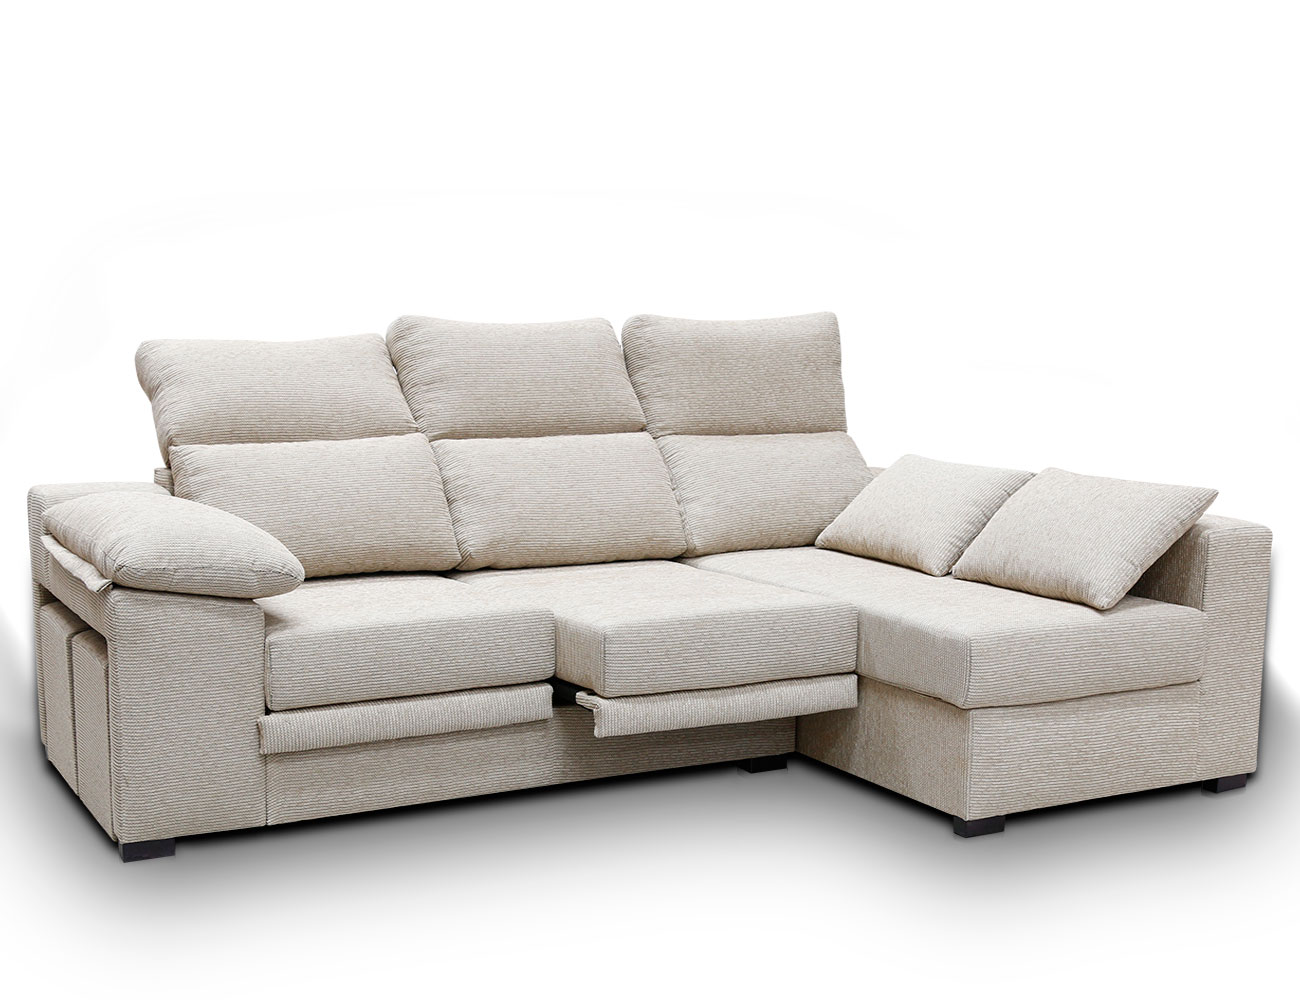 Sofa chaiselongue moderno puffs pardo 21